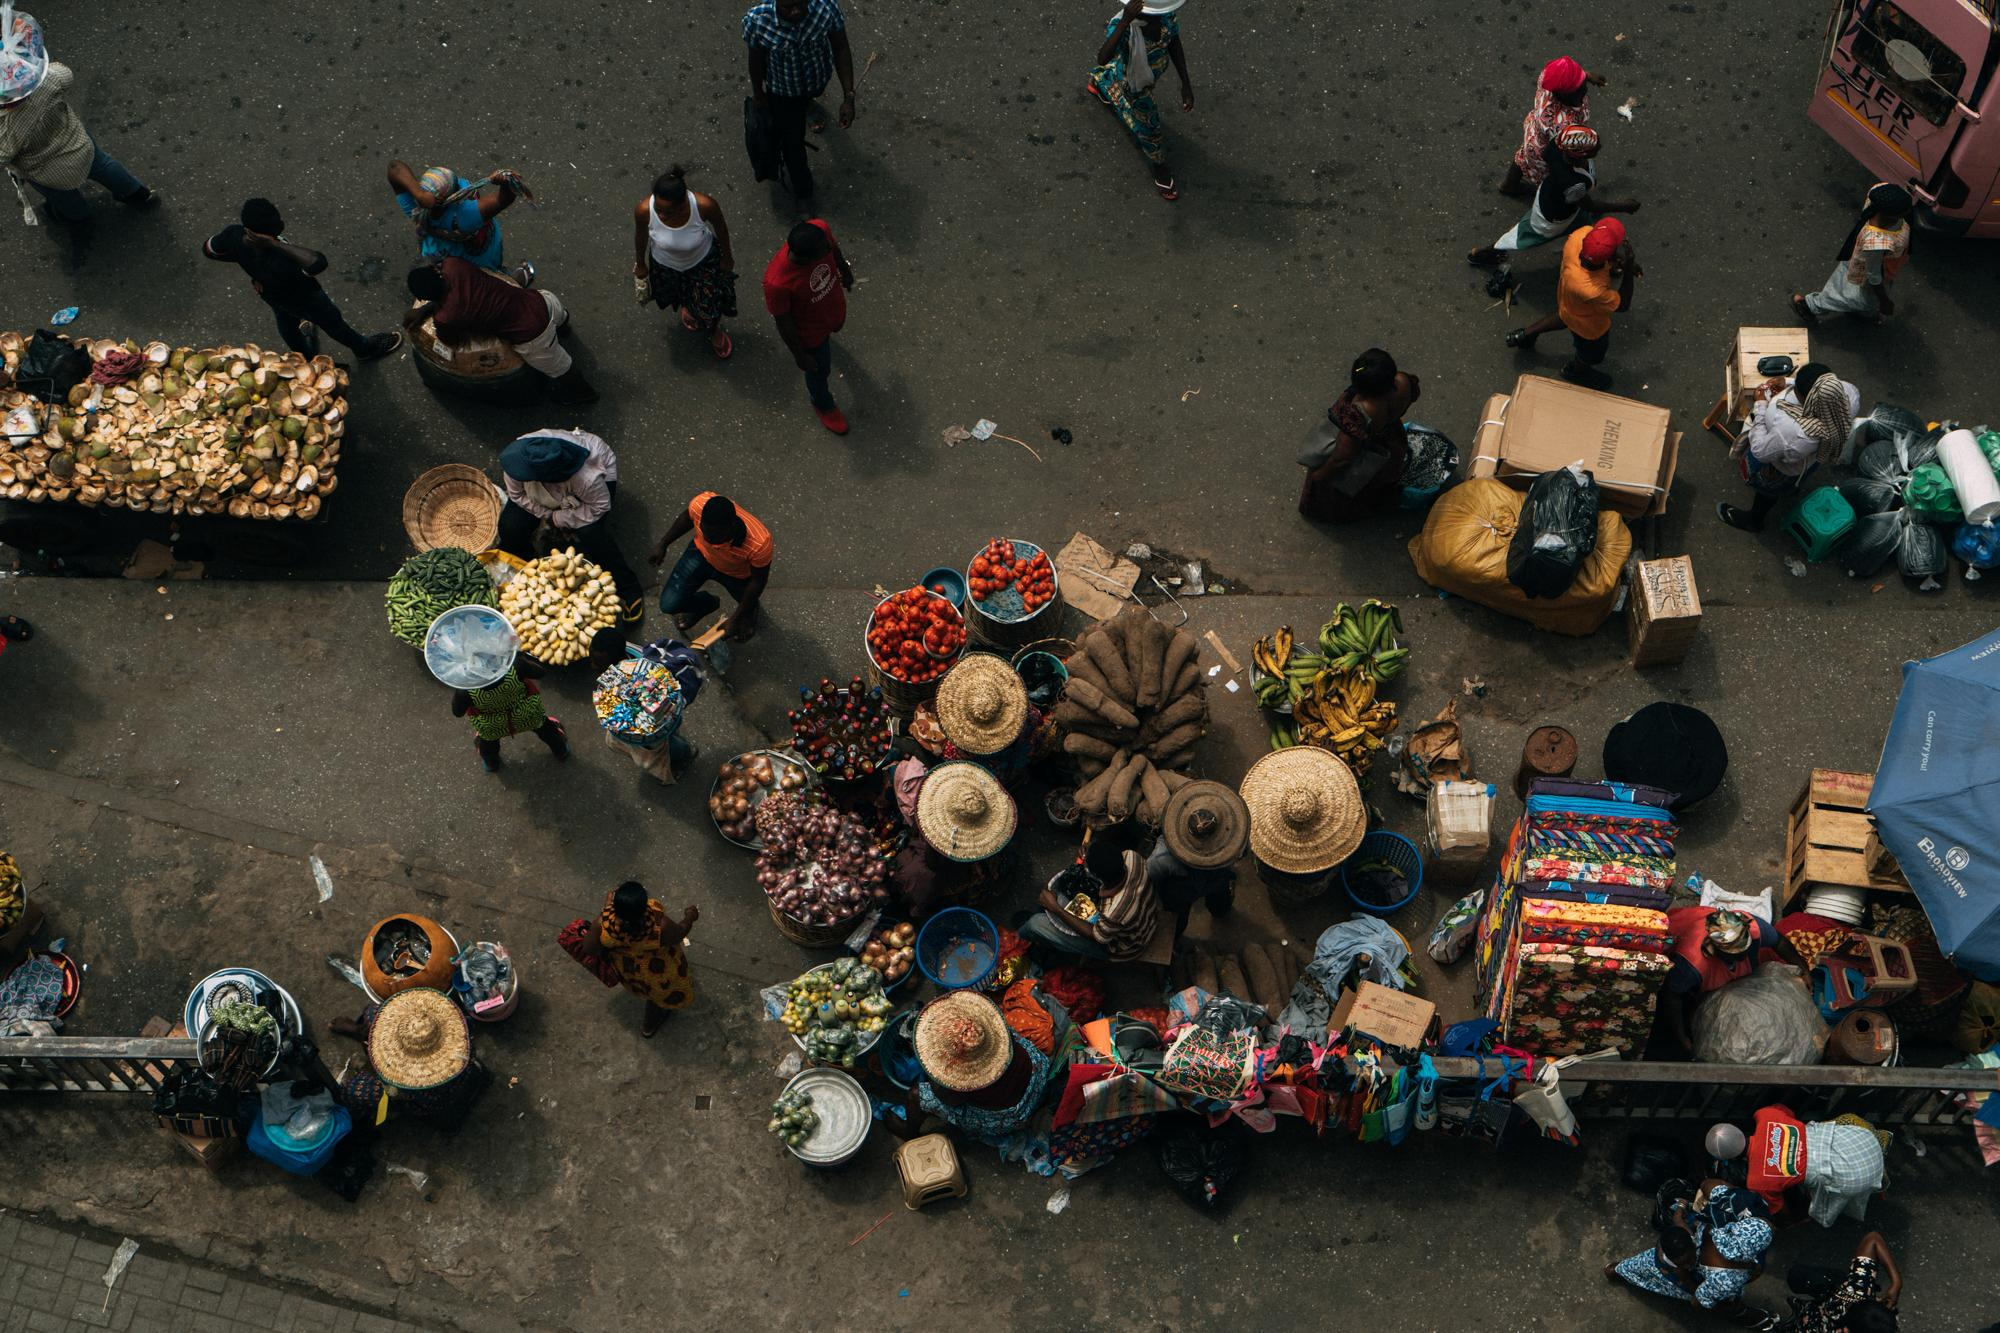 Every day hustle and bustle in Makola - one of the biggest markets in Accra.